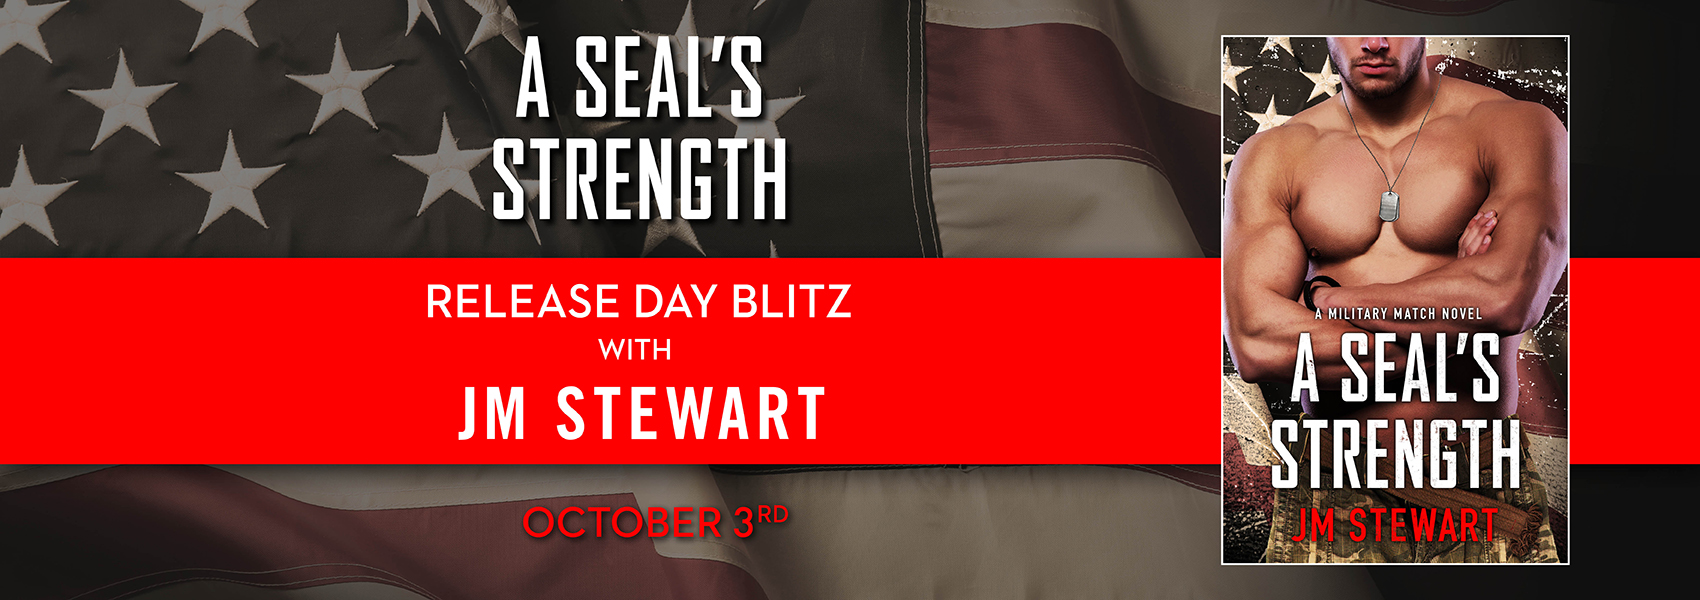 win 1 of 15 free ebook downloads of A SEAL'S STRENGTH!